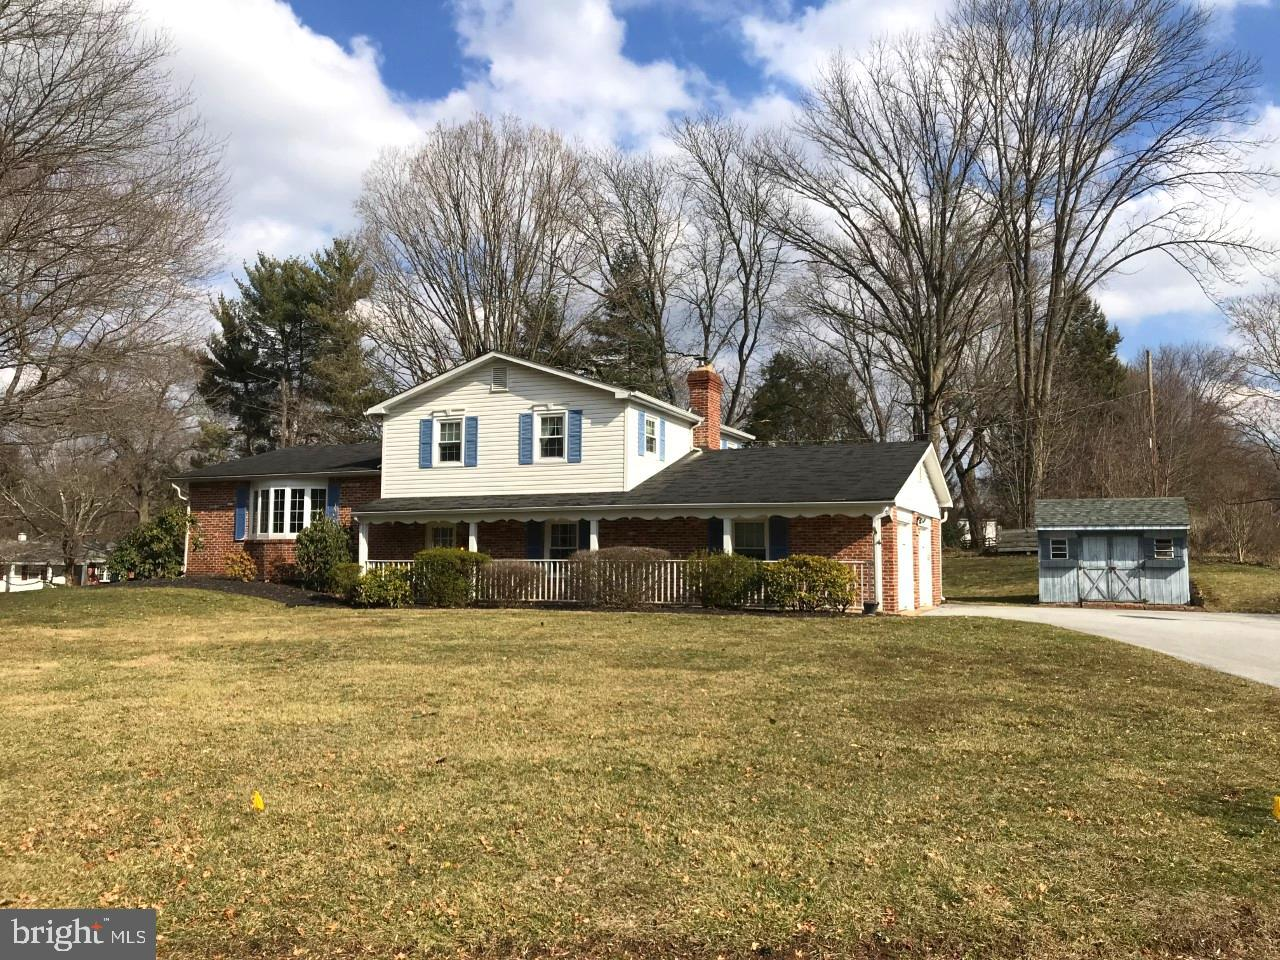 Property for Sale at 75 S FORGE MANOR Drive Phoenixville, Pennsylvania 19460 United States